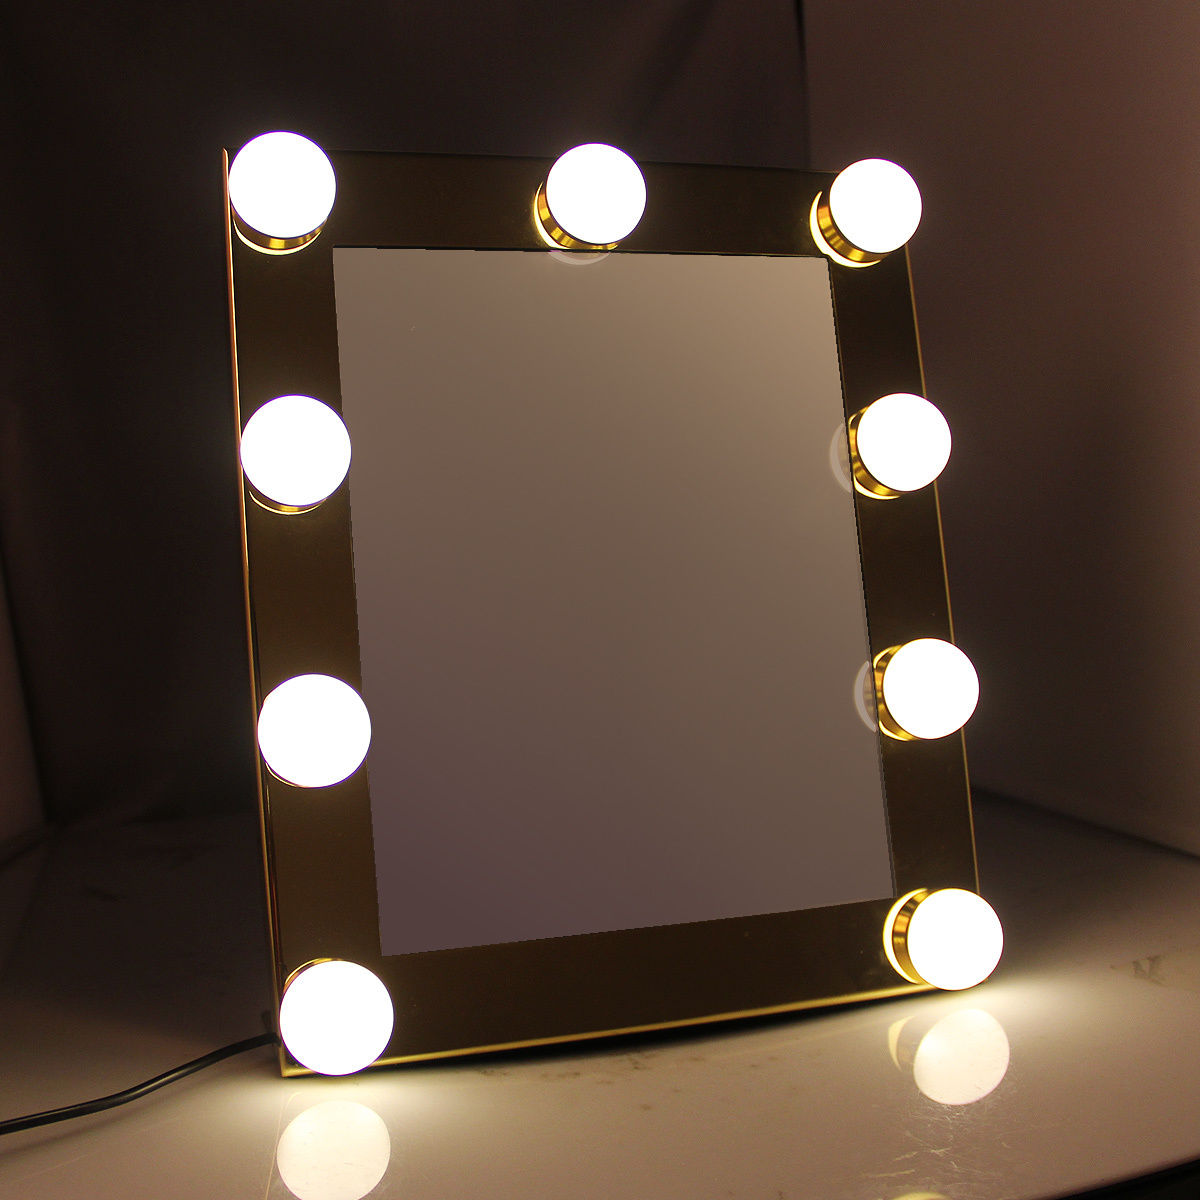 Makeup Mirror Hollywood Vintage Table Vanity Mirror With Led Light 9 Led Lamps Touch Dimmers Beauty Miroir Espejo de Maquillaje